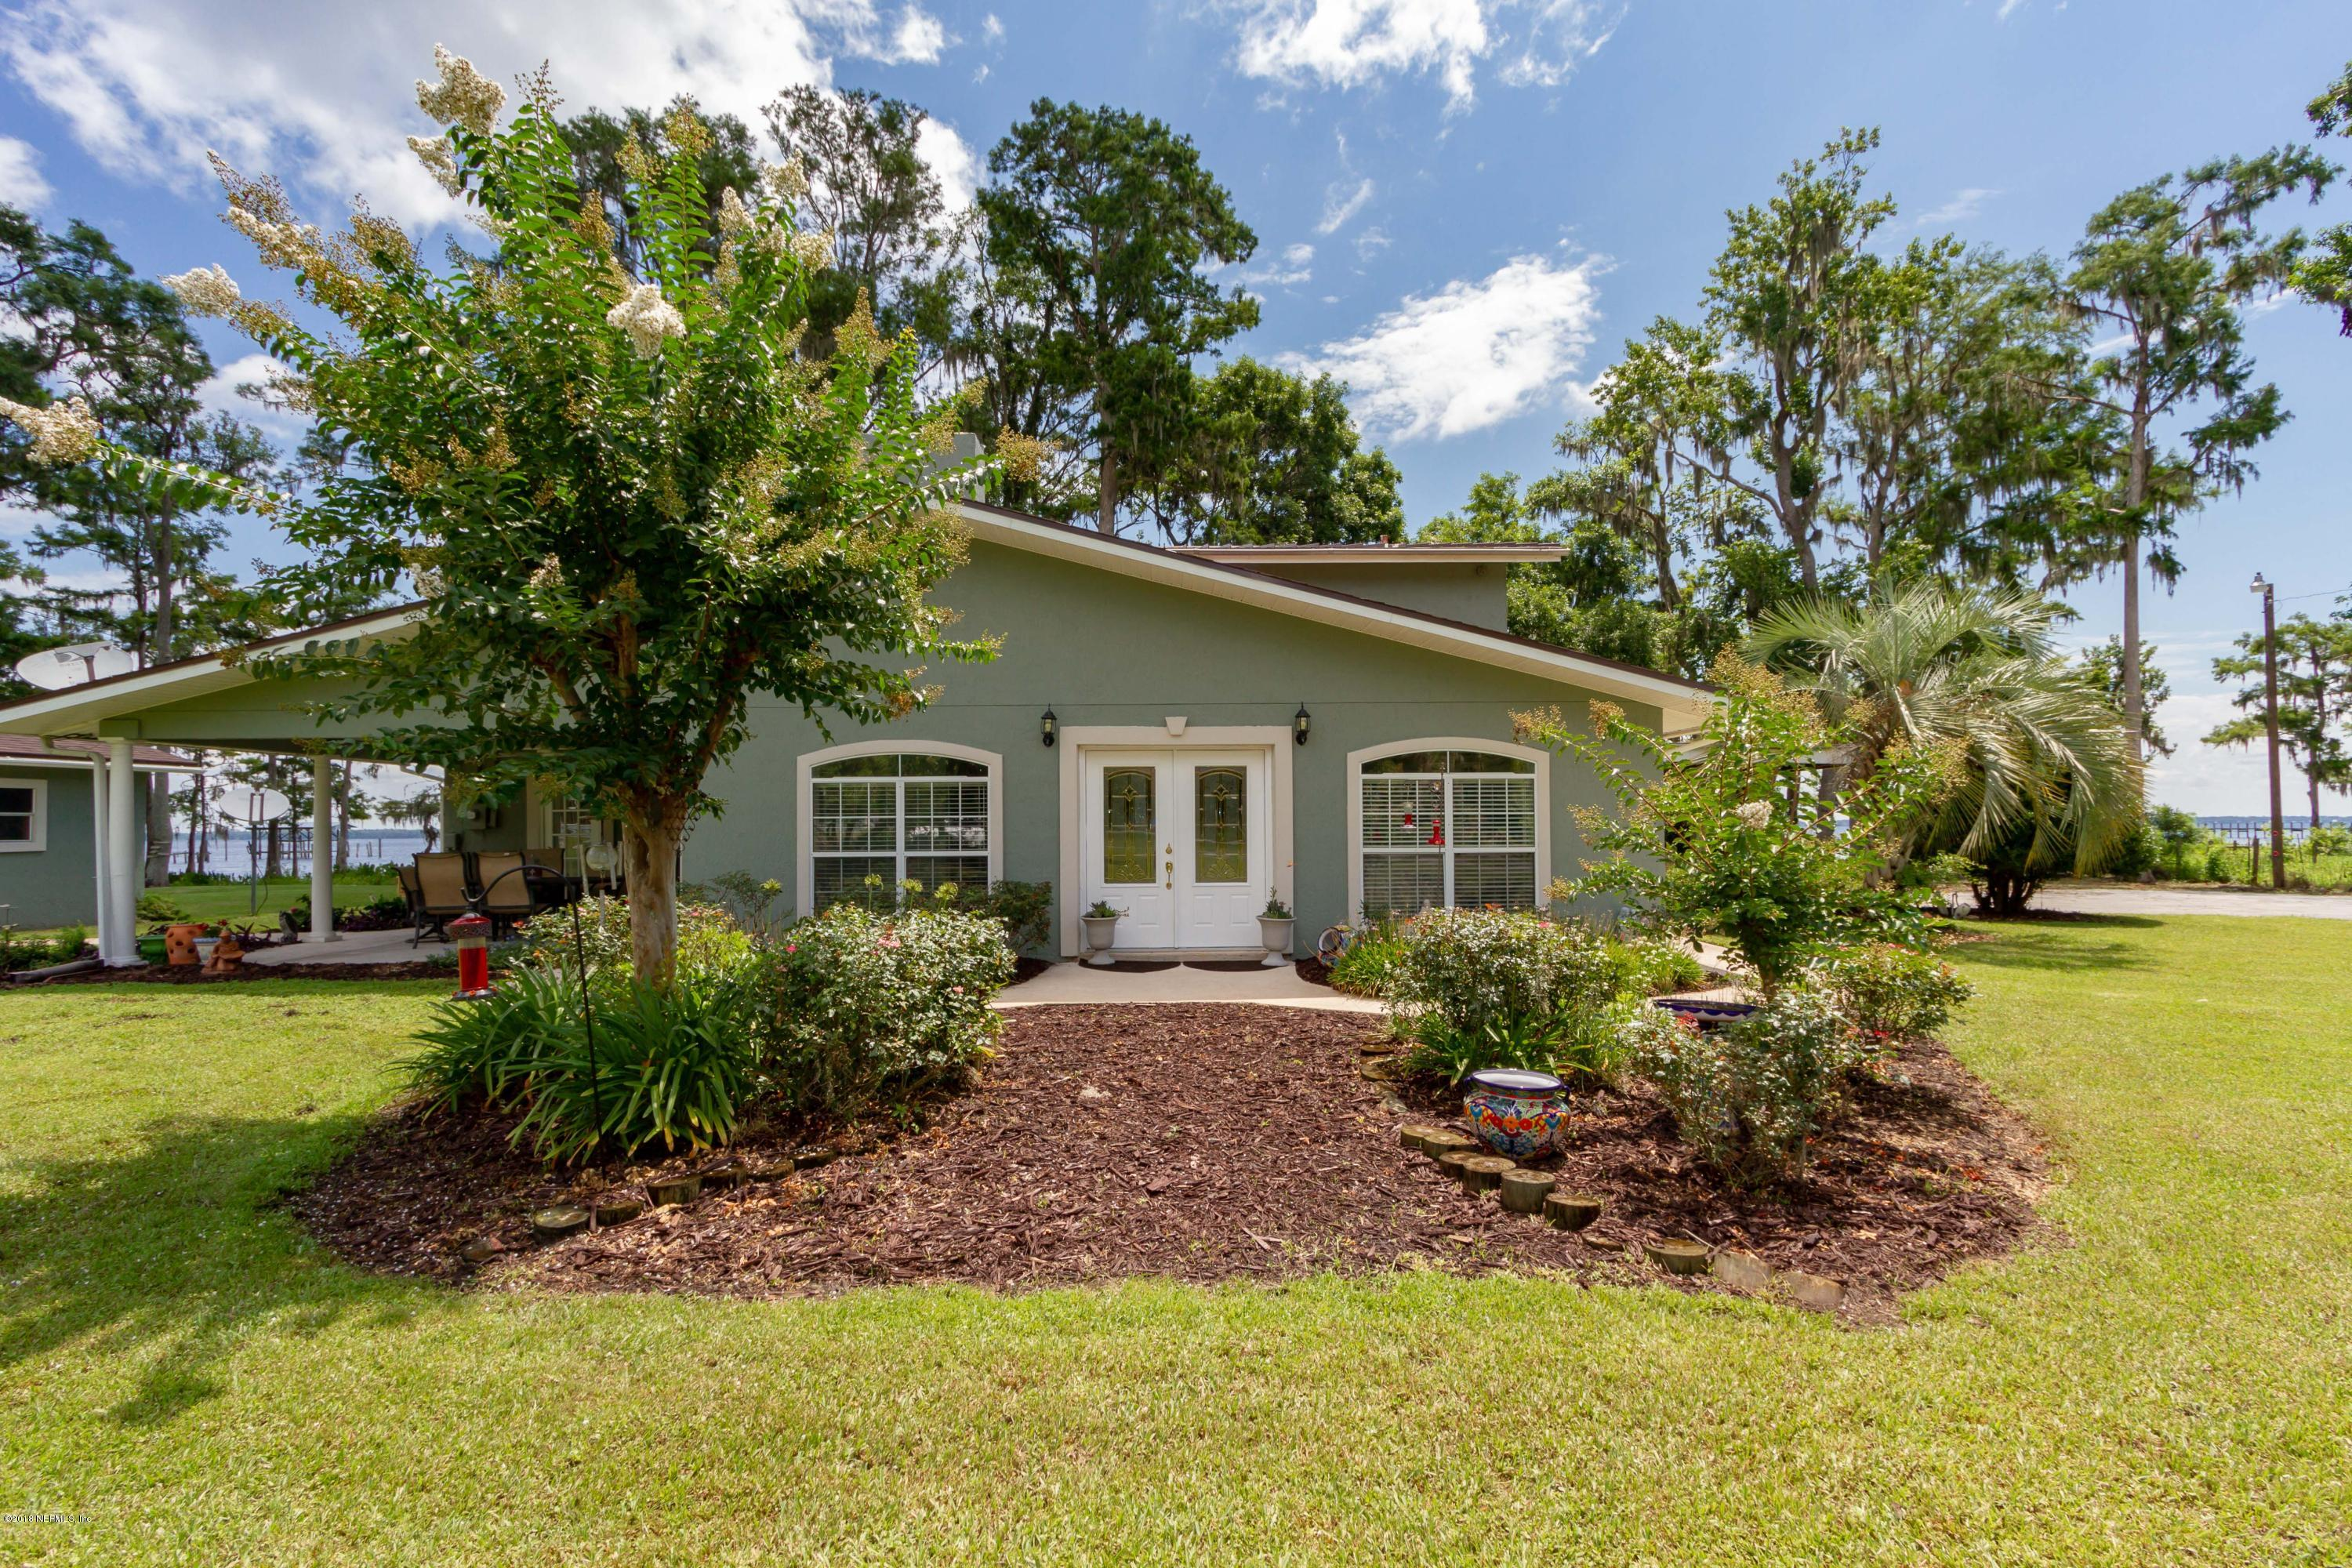 6167 COUNTY RD 209 S GREEN COVE SPRINGS, FL 32043 944370